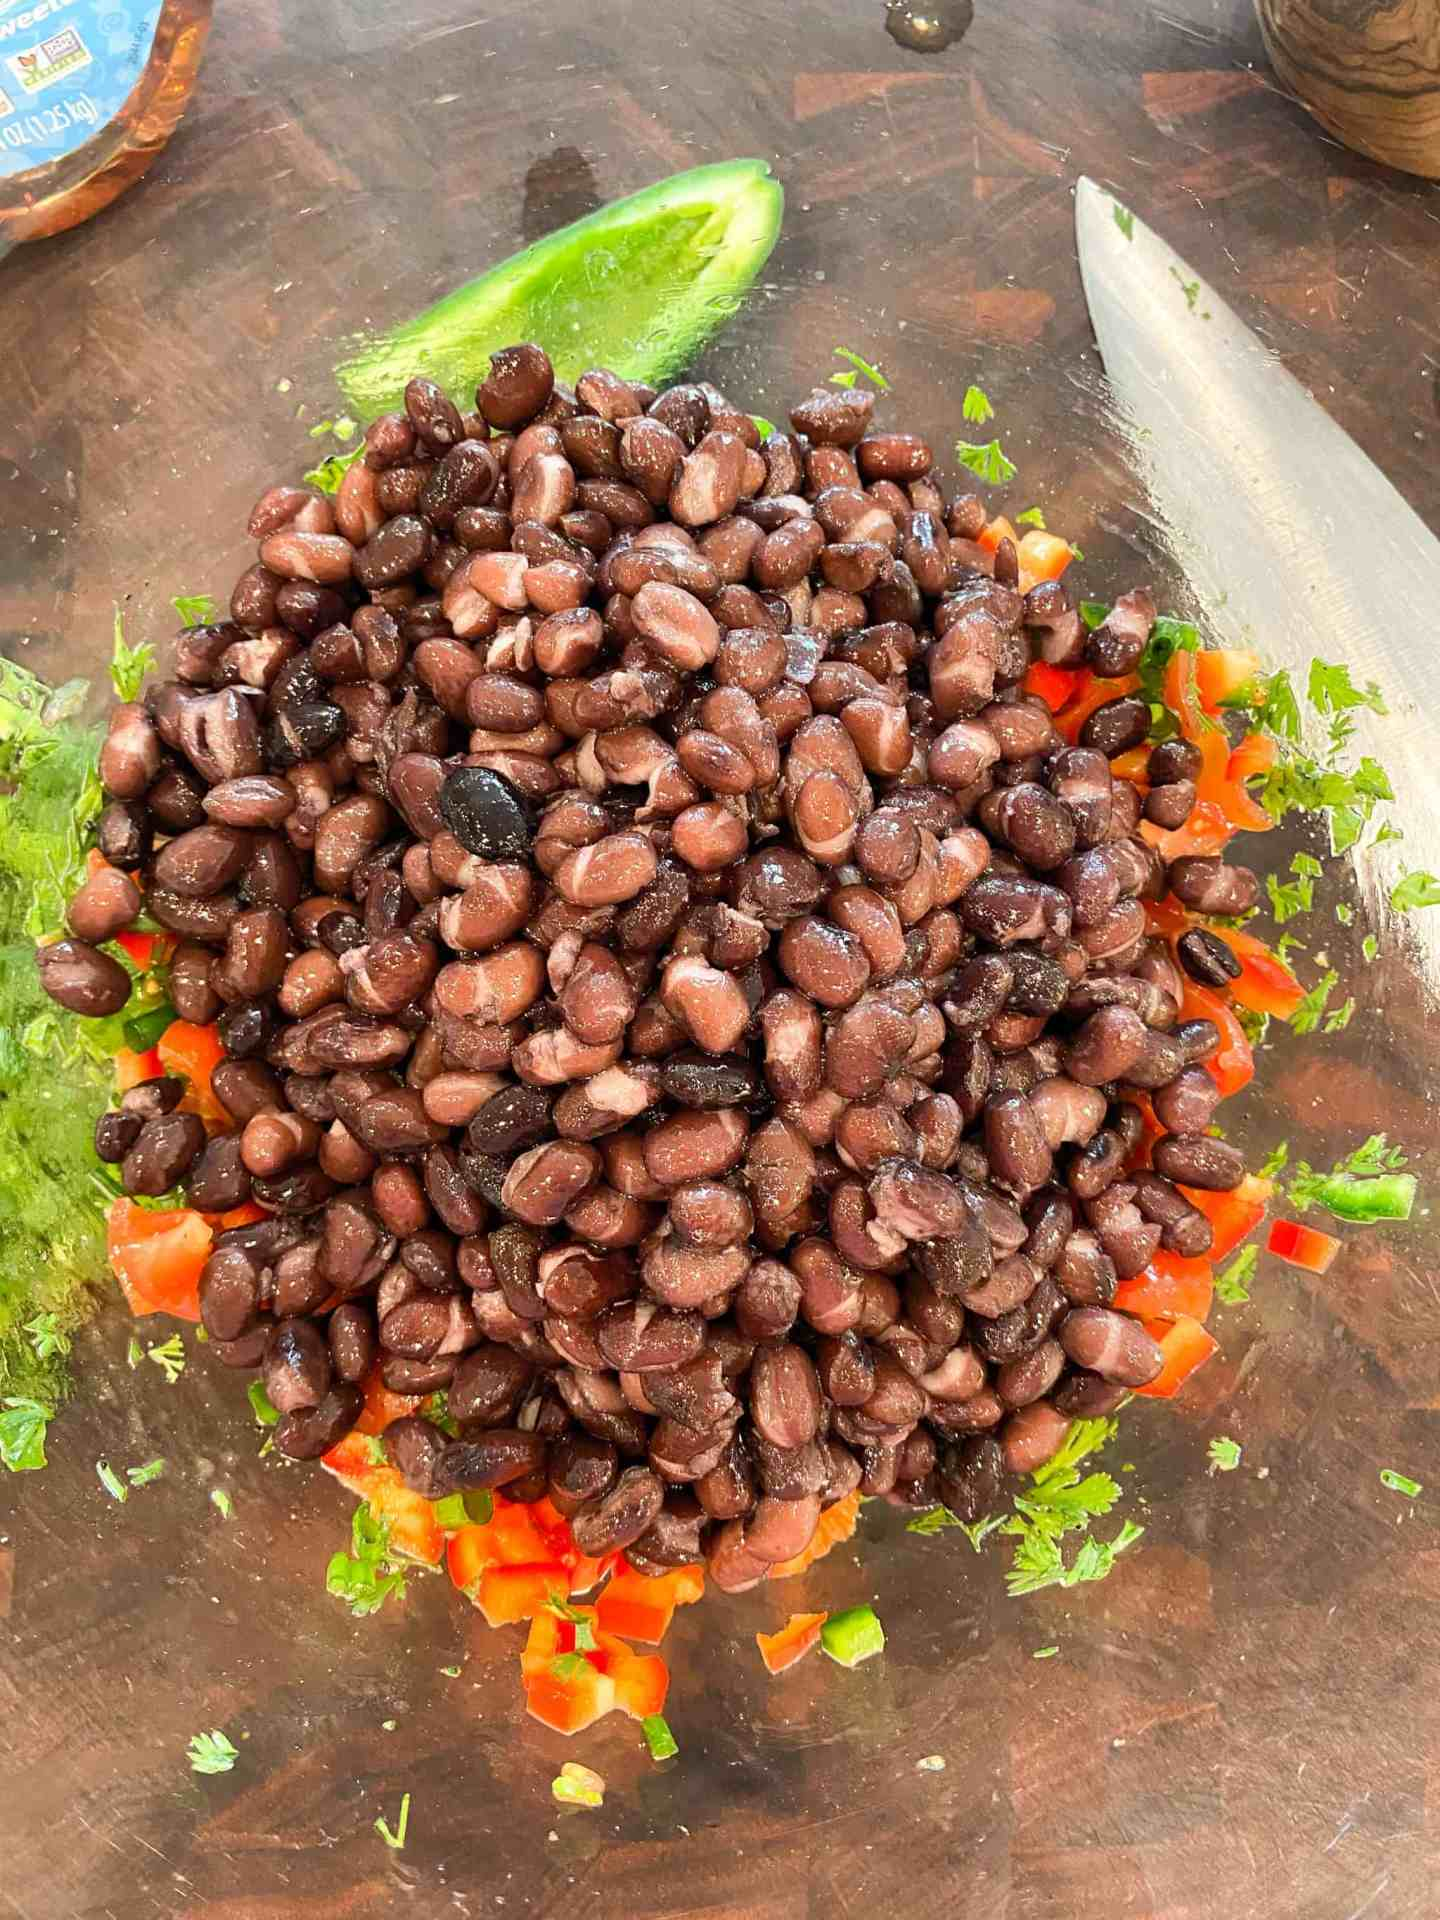 2-cans-of-black-beans-rinsed-and-drained